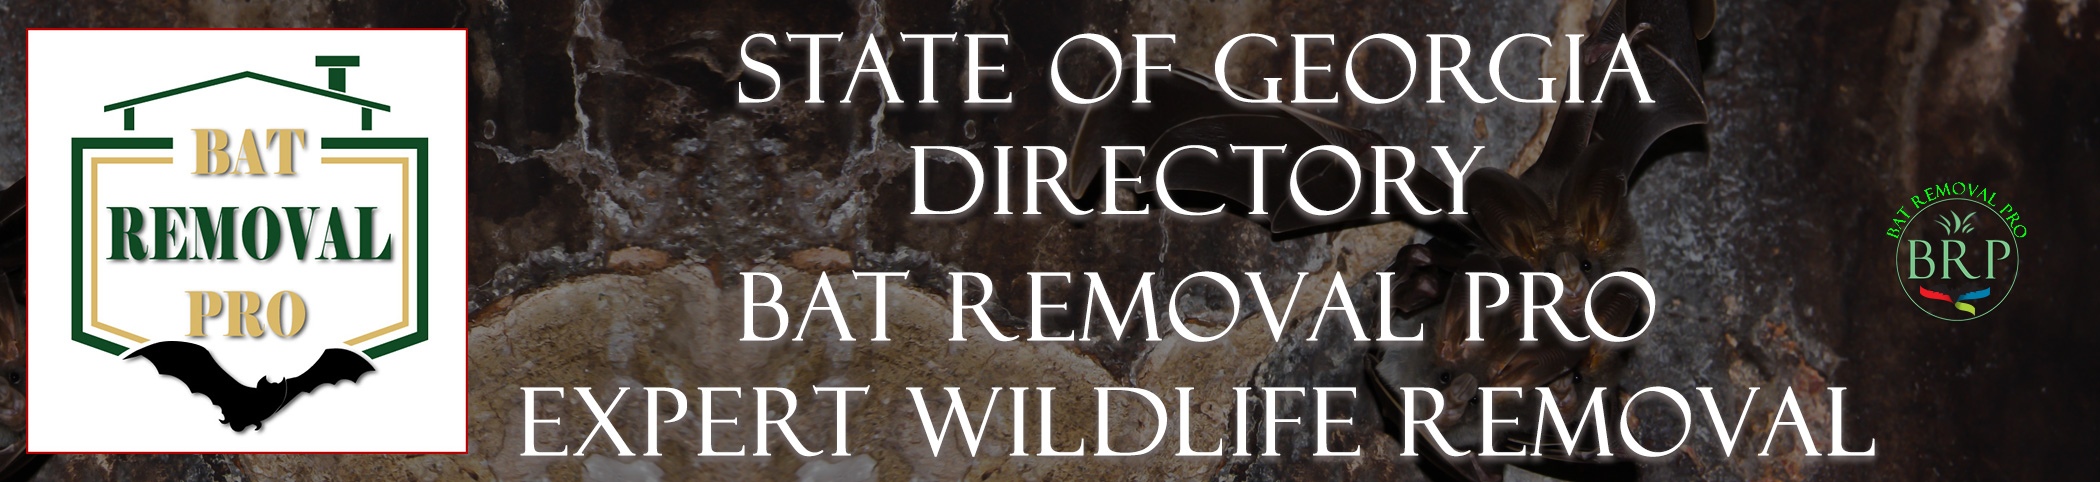 georgia-bat-removal-at-bat-removal-pro-header-image